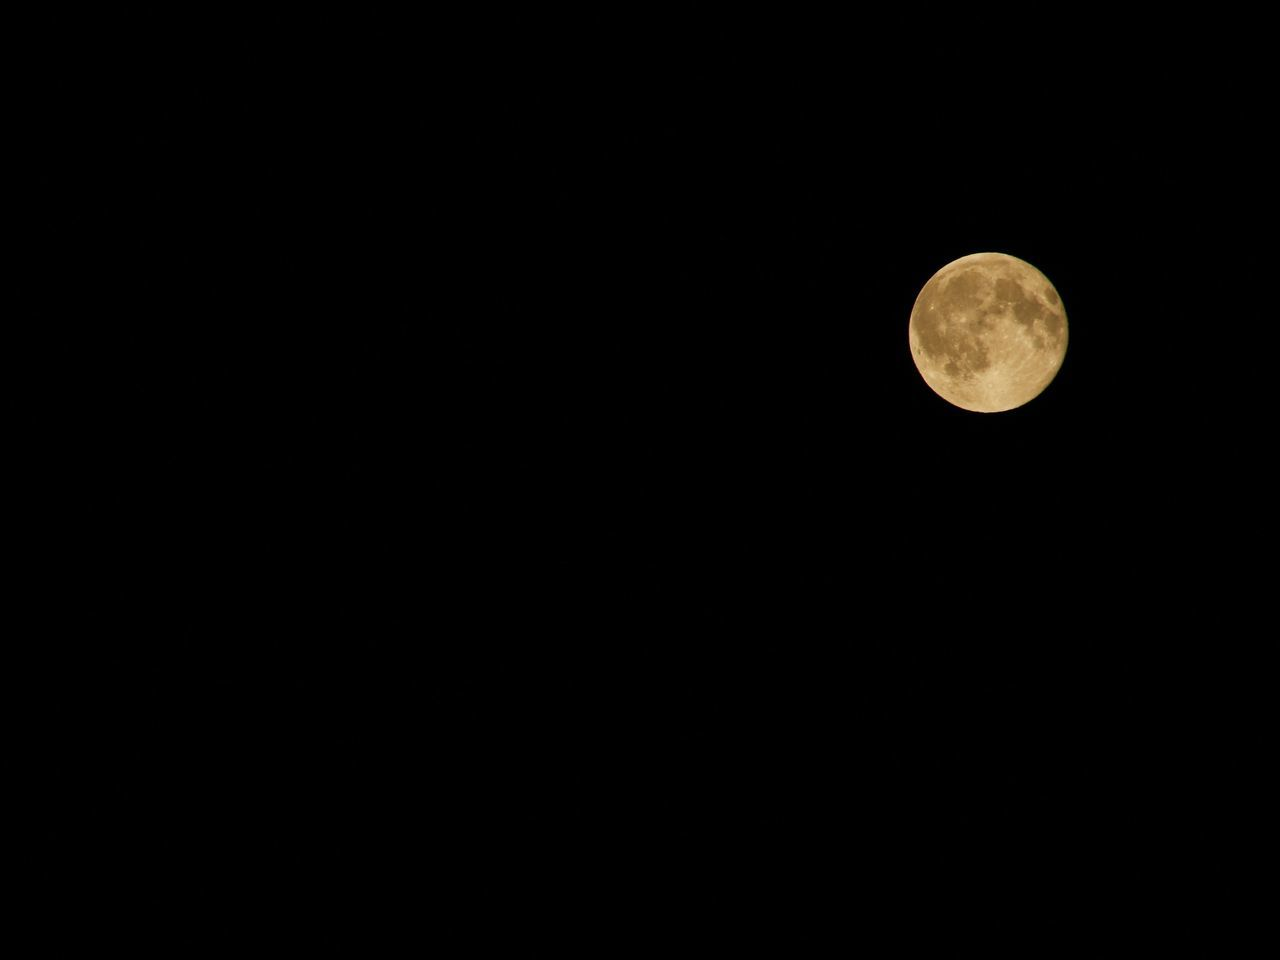 EyeEm Selects EyeEmNewHere Moon Copy Space Astronomy Night Planetary Moon Moon Surface Beauty In Nature Nature Tranquility Scenics Low Angle View Tranquil Scene Clear Sky No People Half Moon Space Exploration Outdoors Sky Space